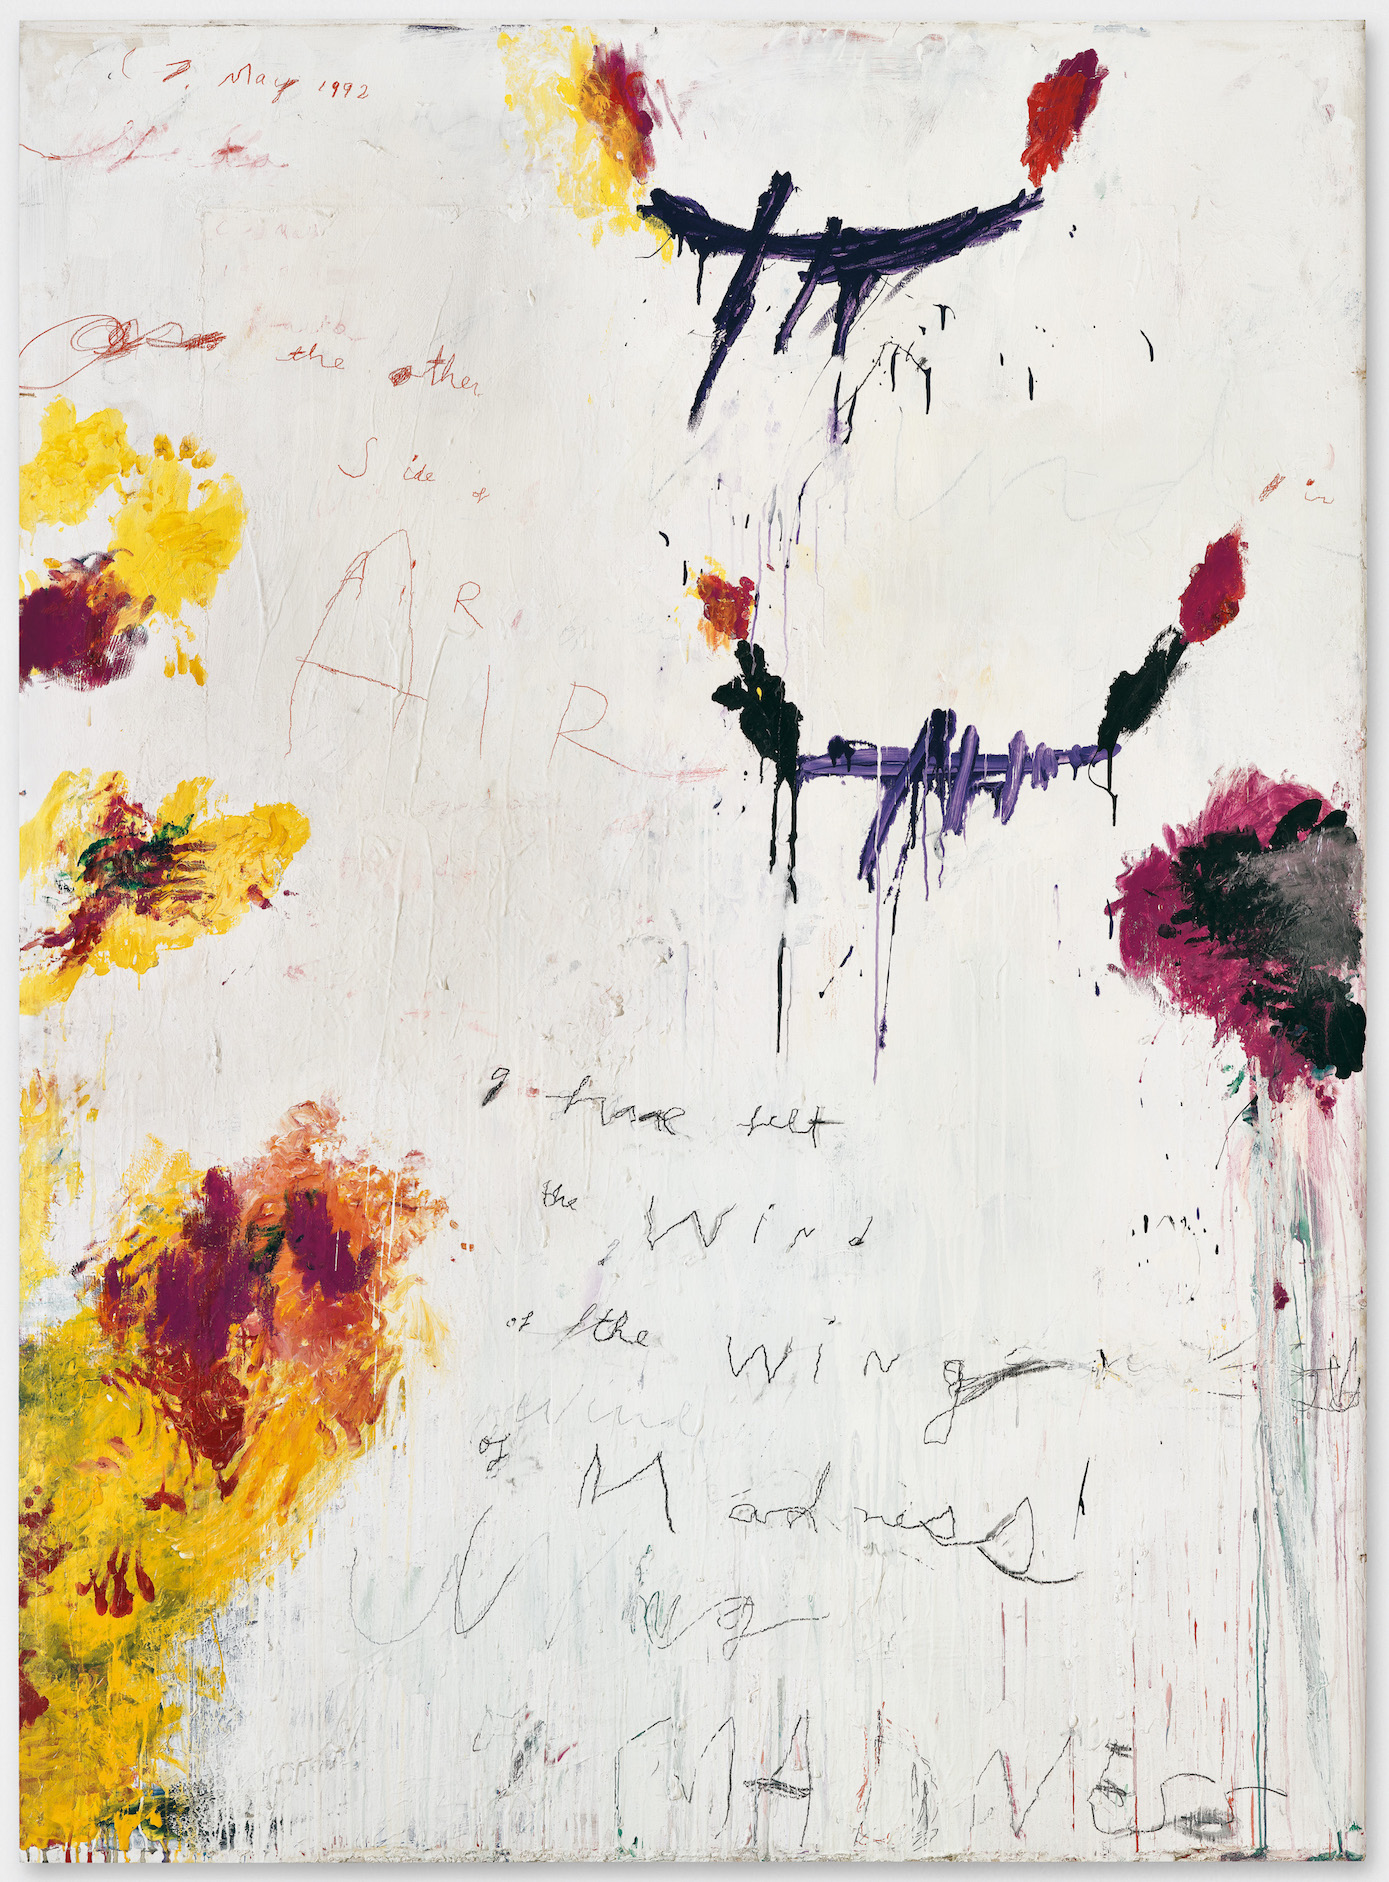 Cy Twombly, Untitled, 1992. Courtesy: Cy Twombly Foundation